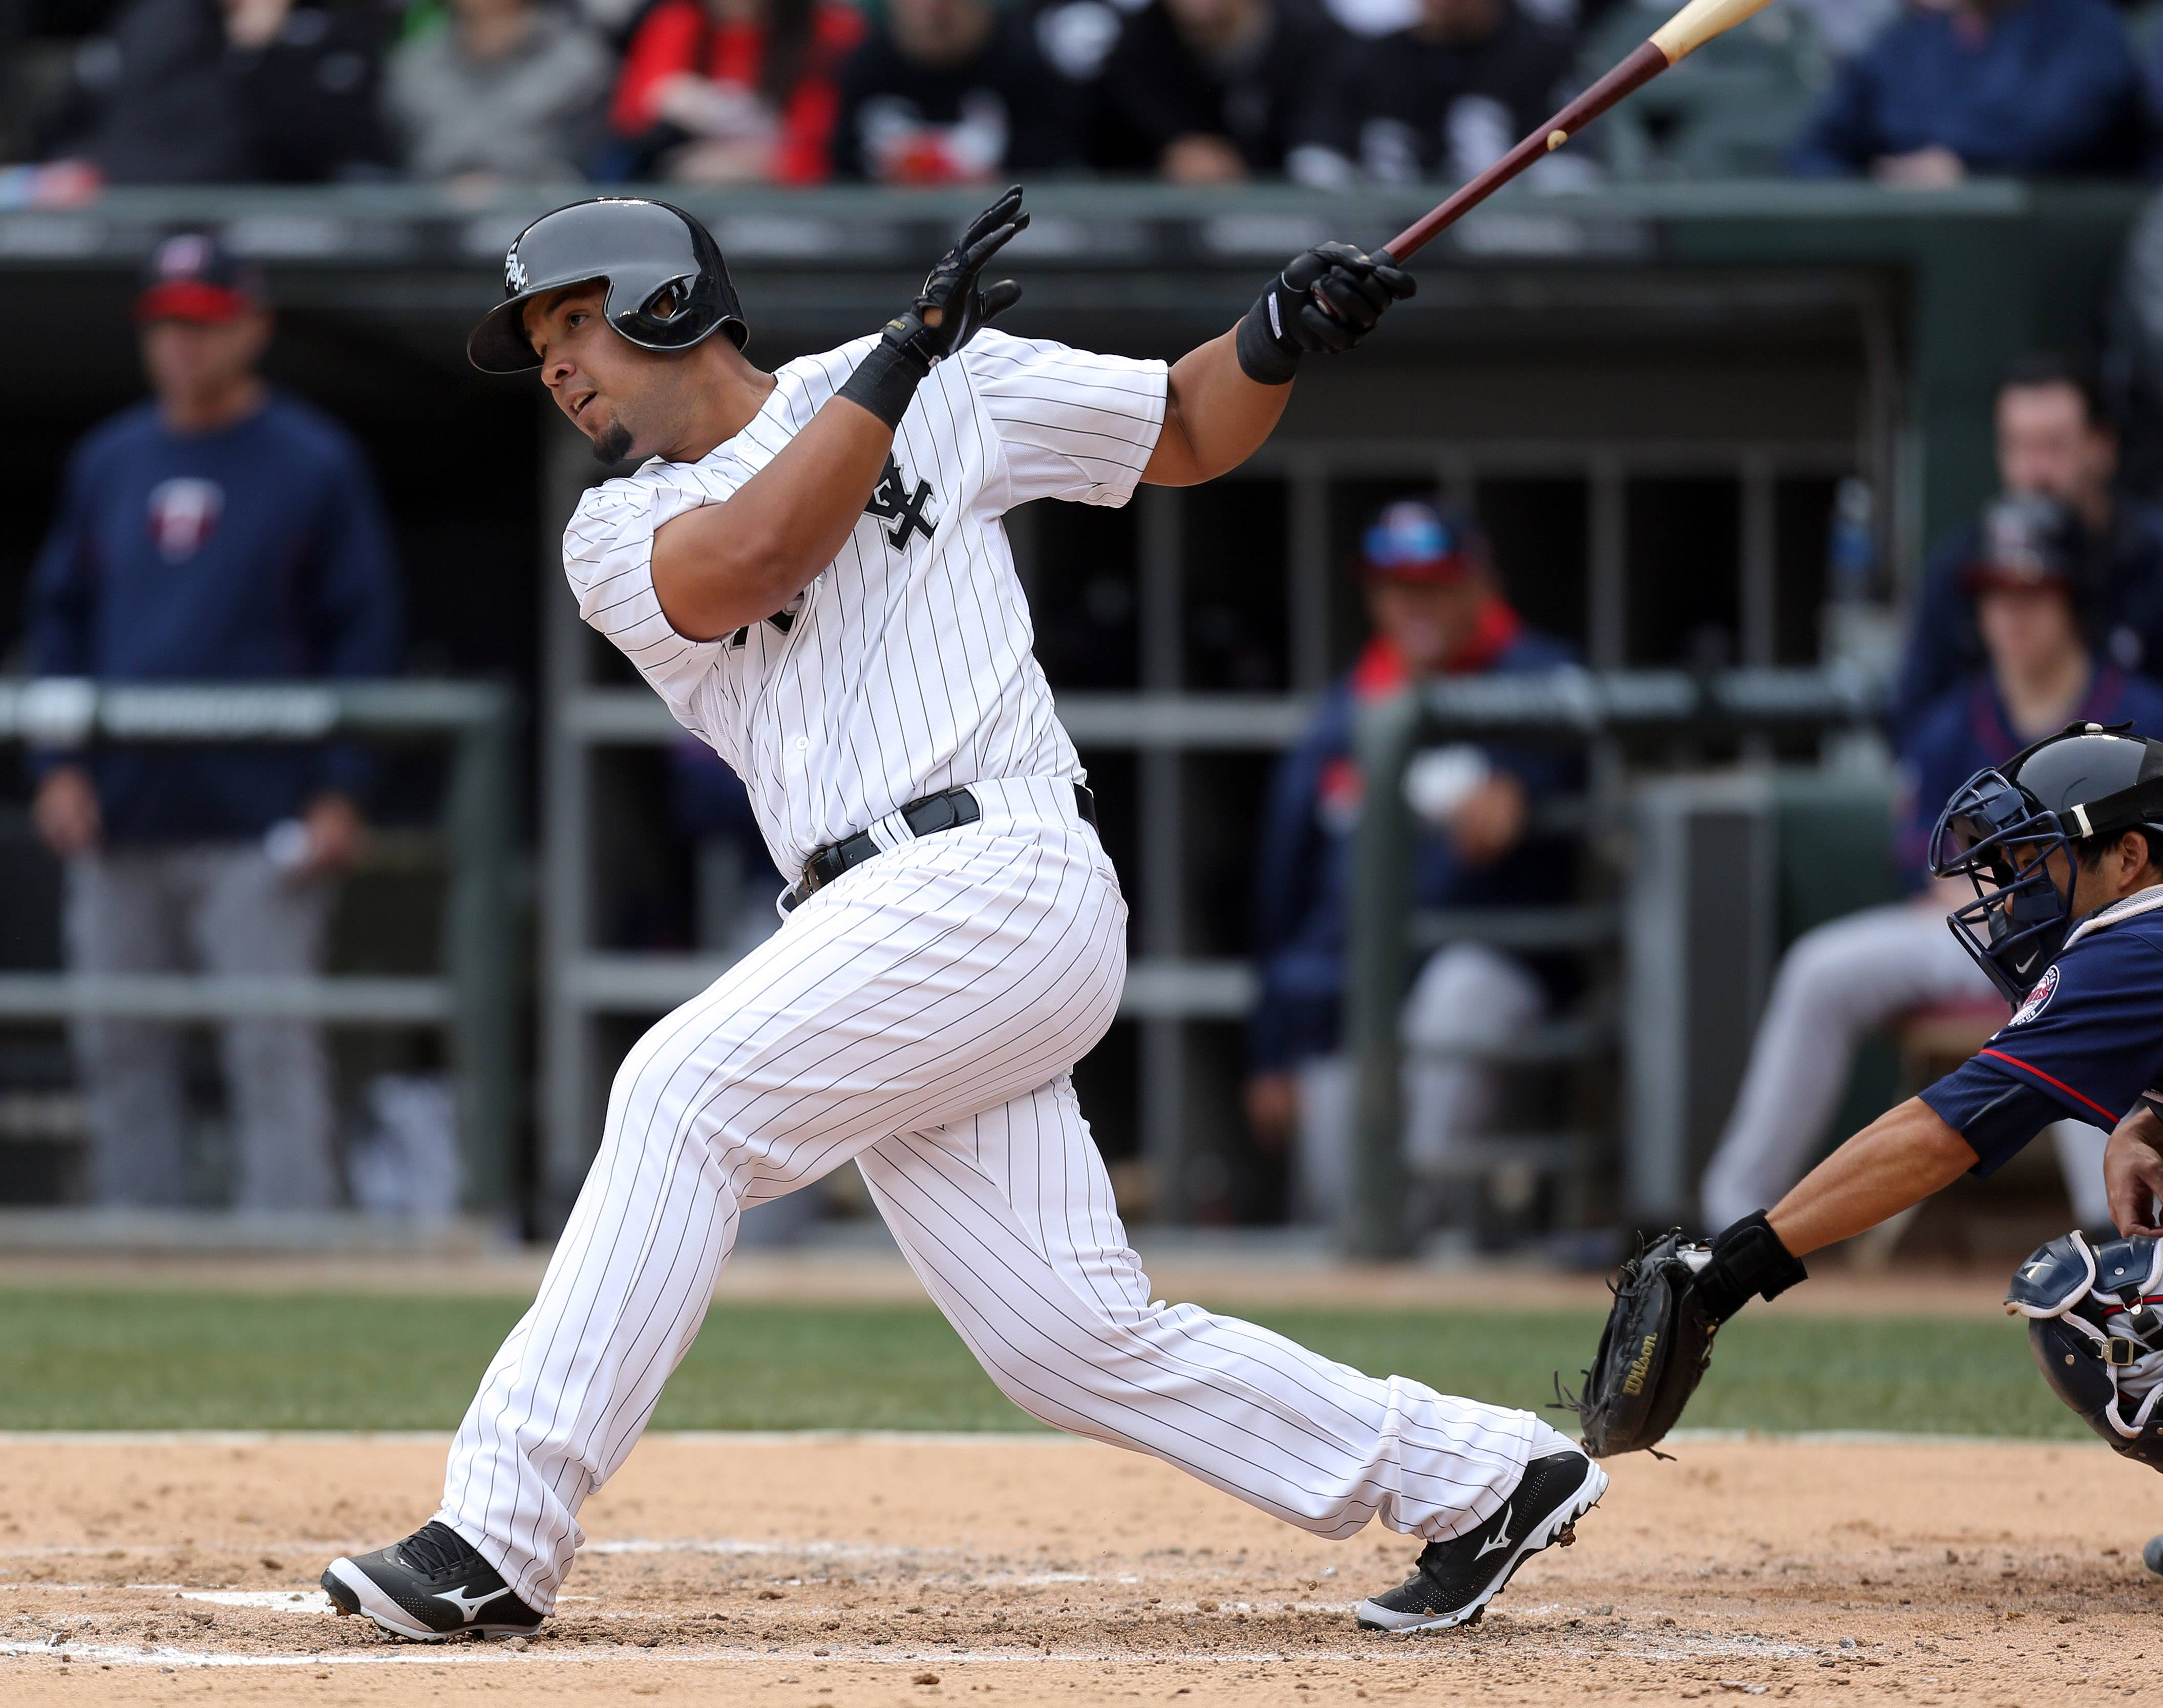 Chicago White Sox first baseman Jose Abreu connects.